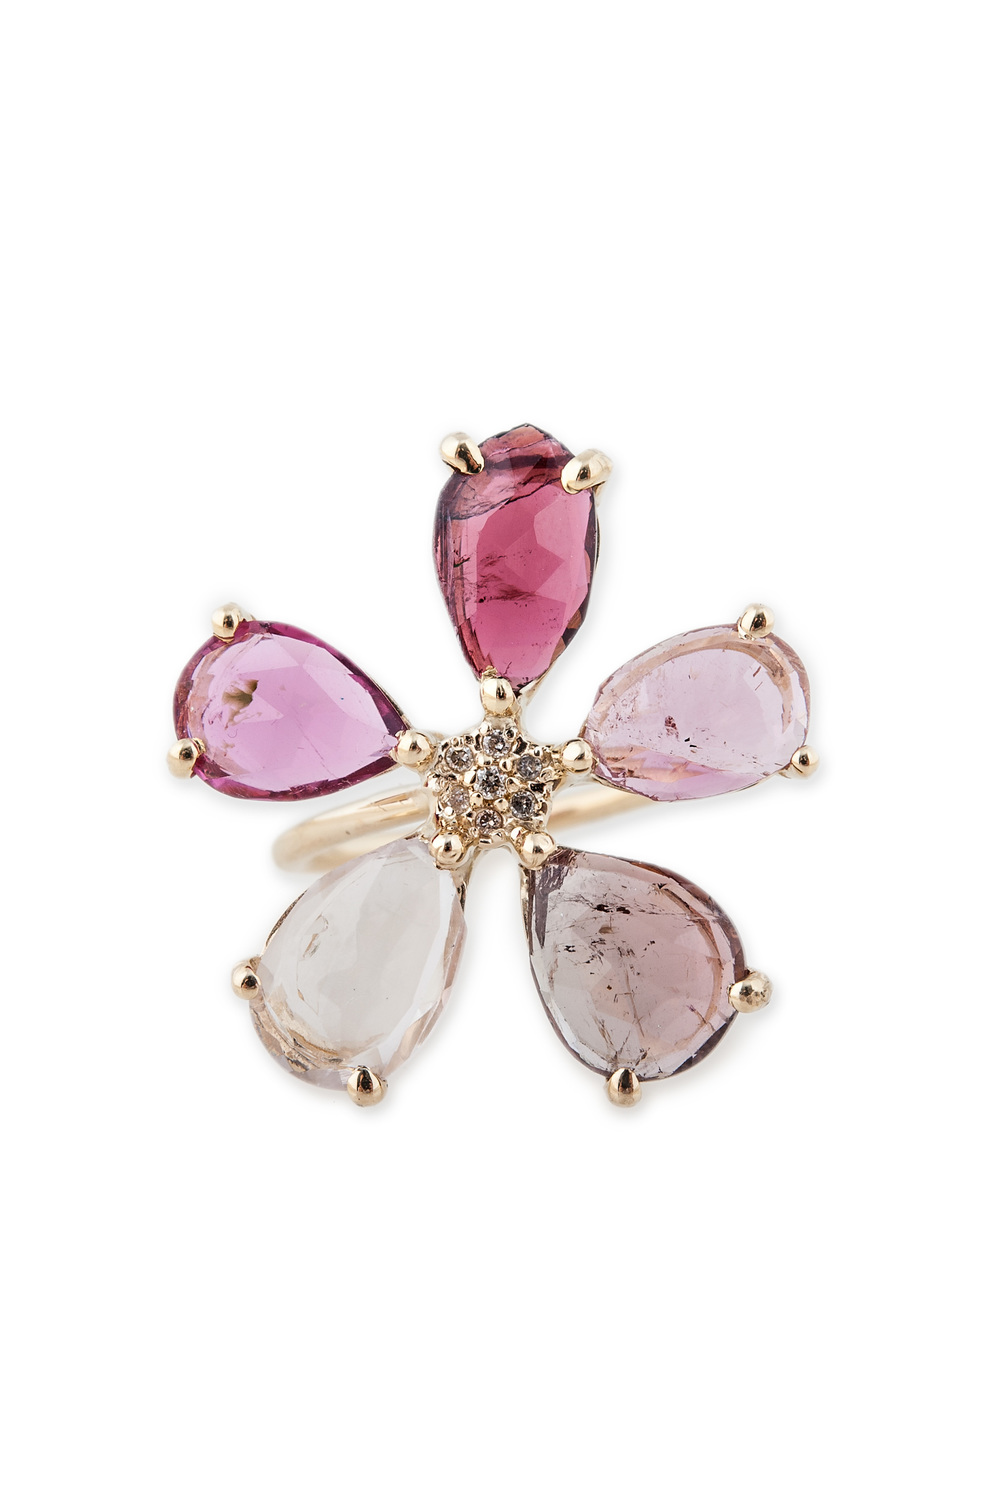 Assorted Tourmaline flower ring, $2,500, available at Broken English.